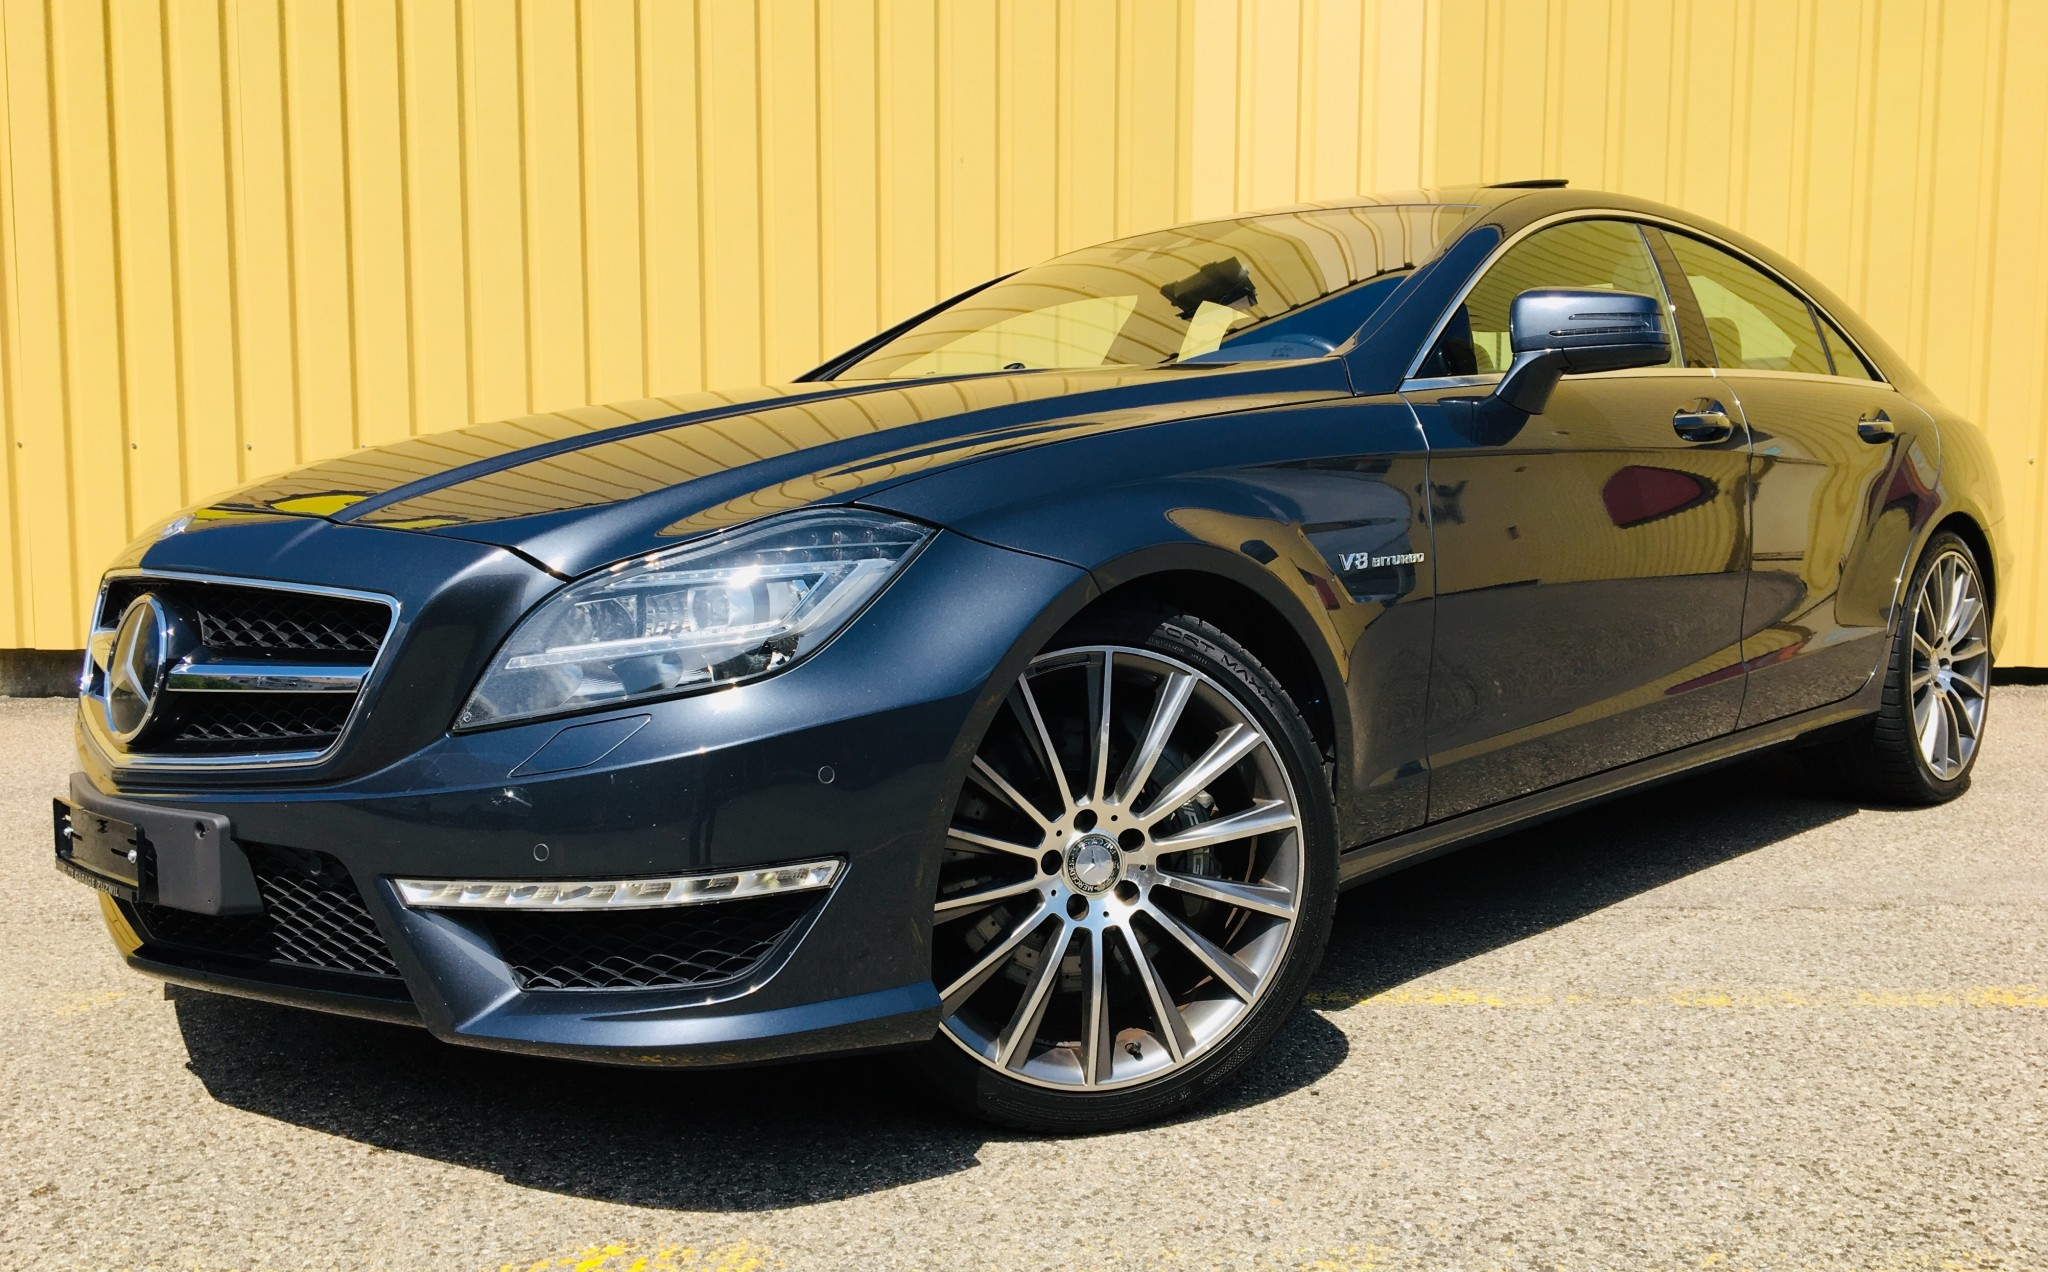 saloon Mercedes-Benz CLS 63 AMG 32'500km 05.2011